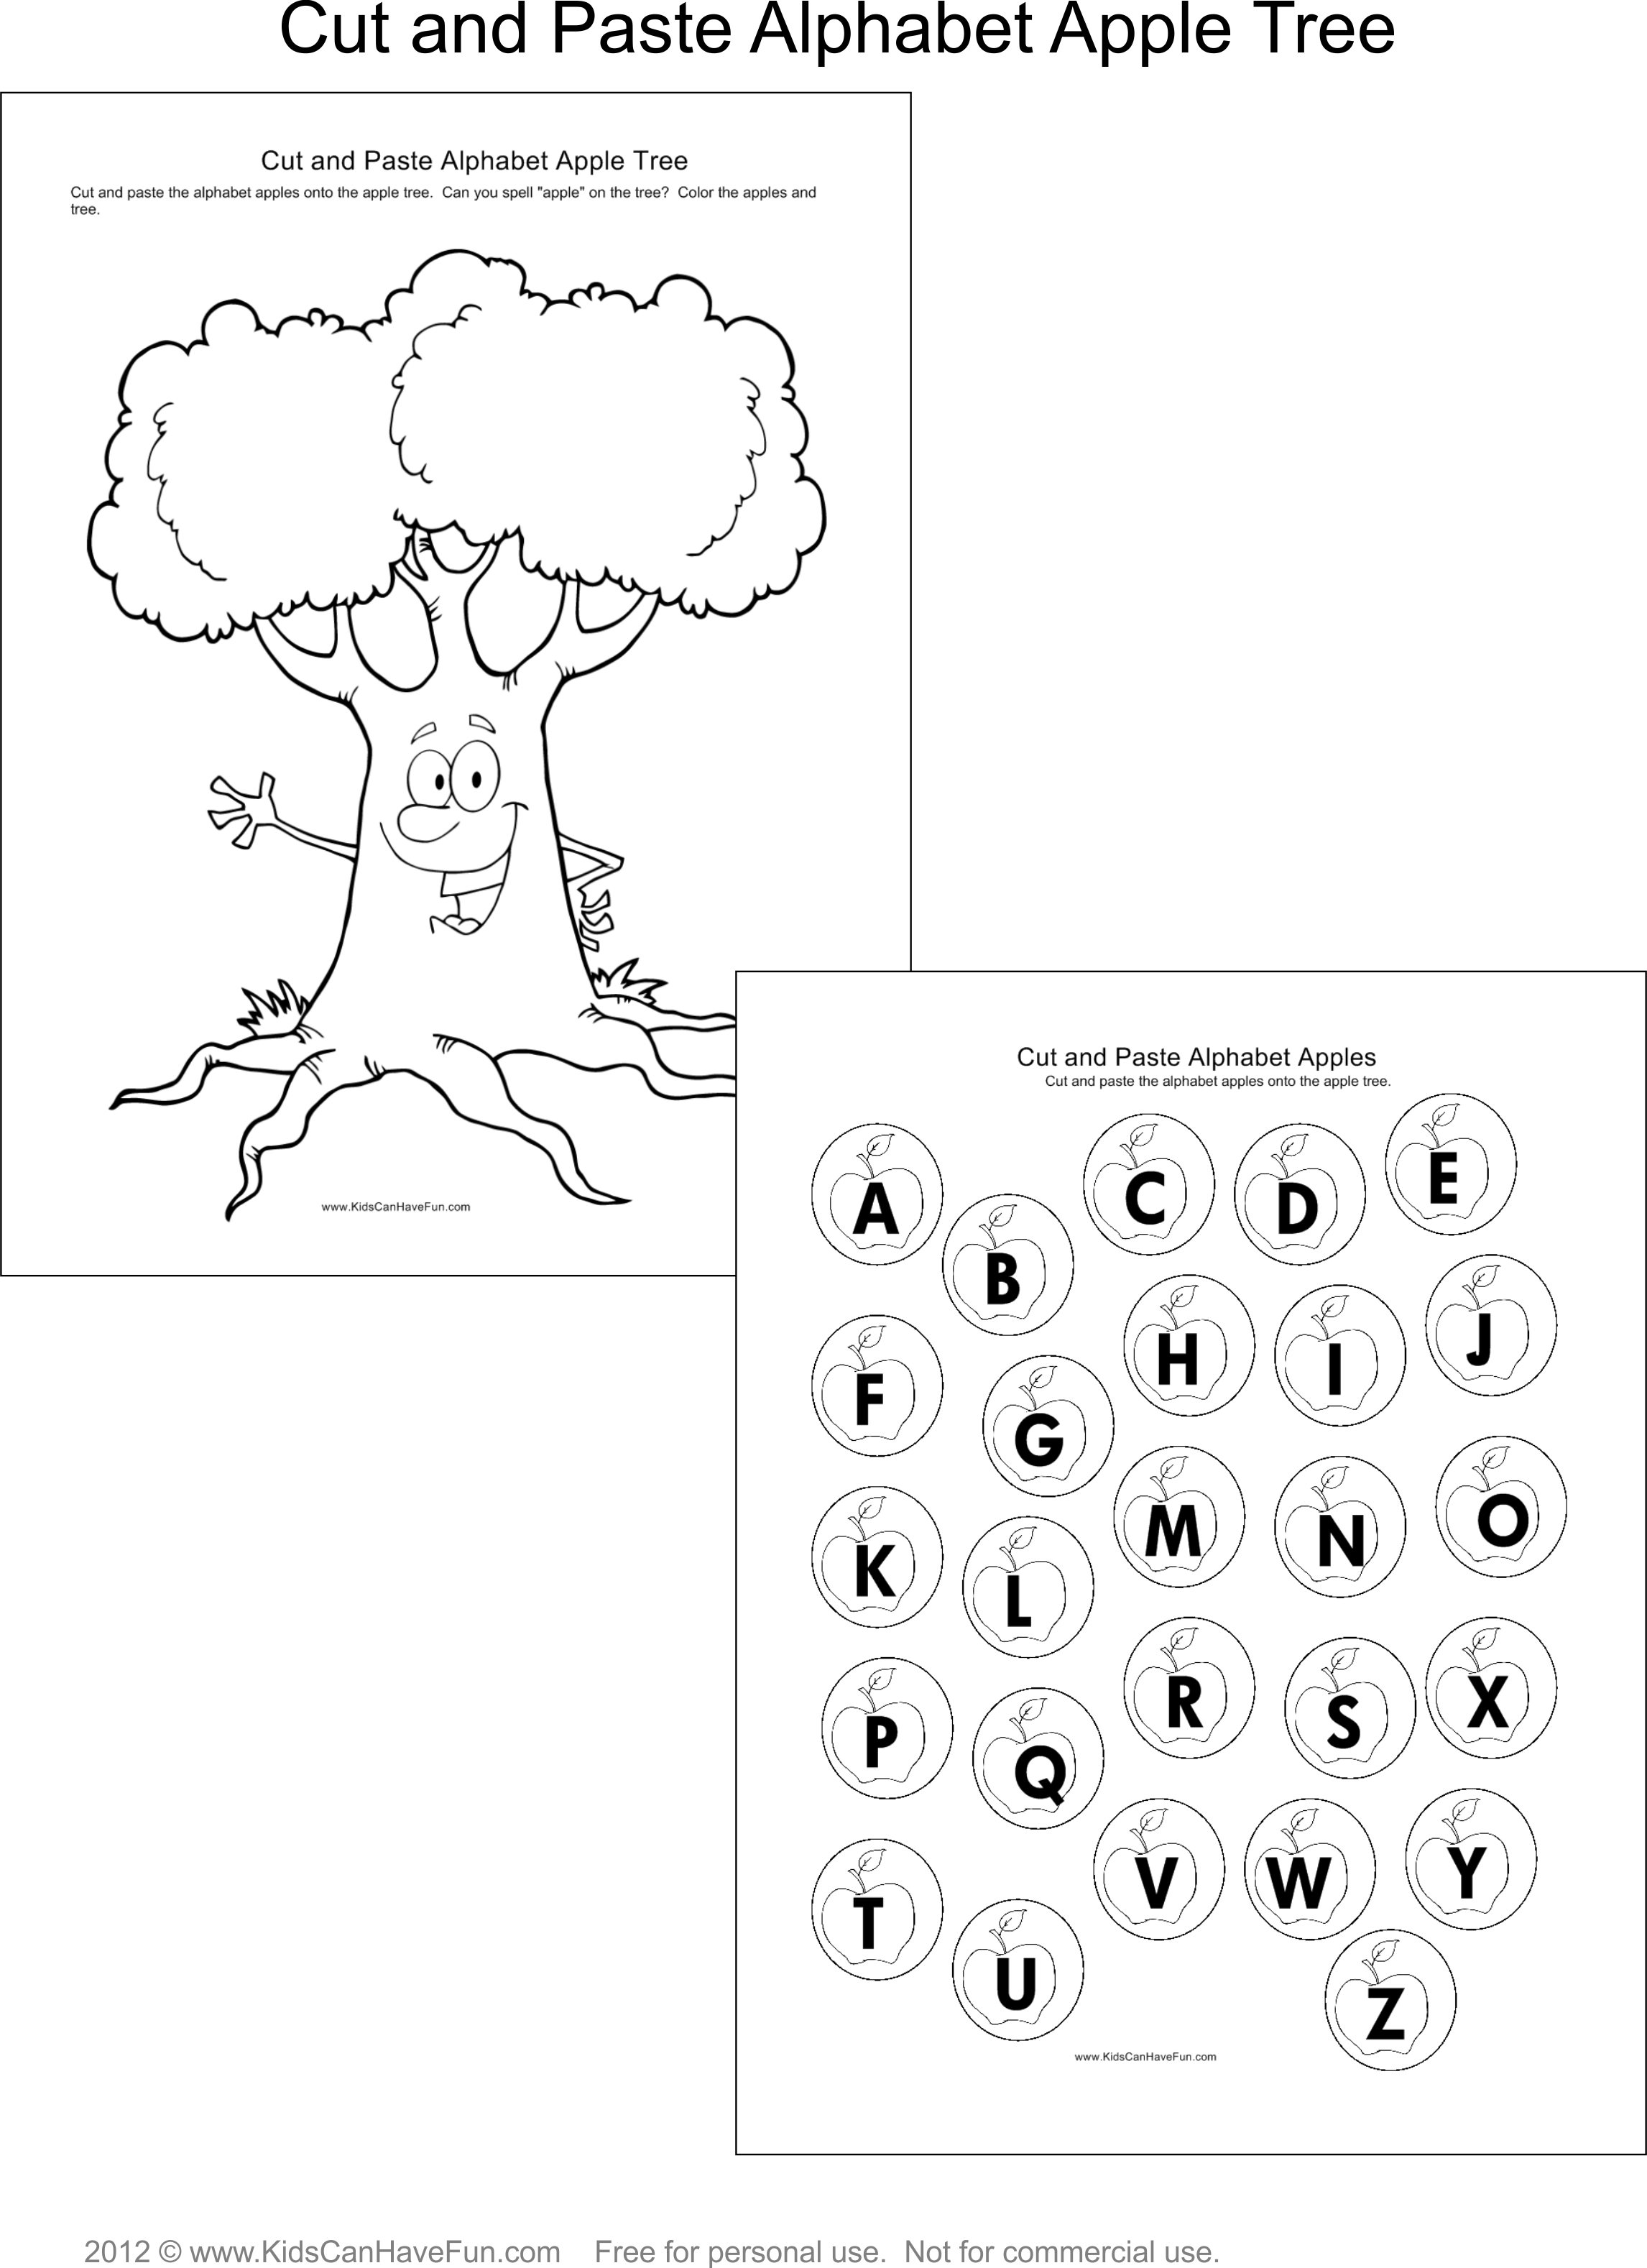 Pin By Kidscanhavefun On Cut And Paste Worksheets